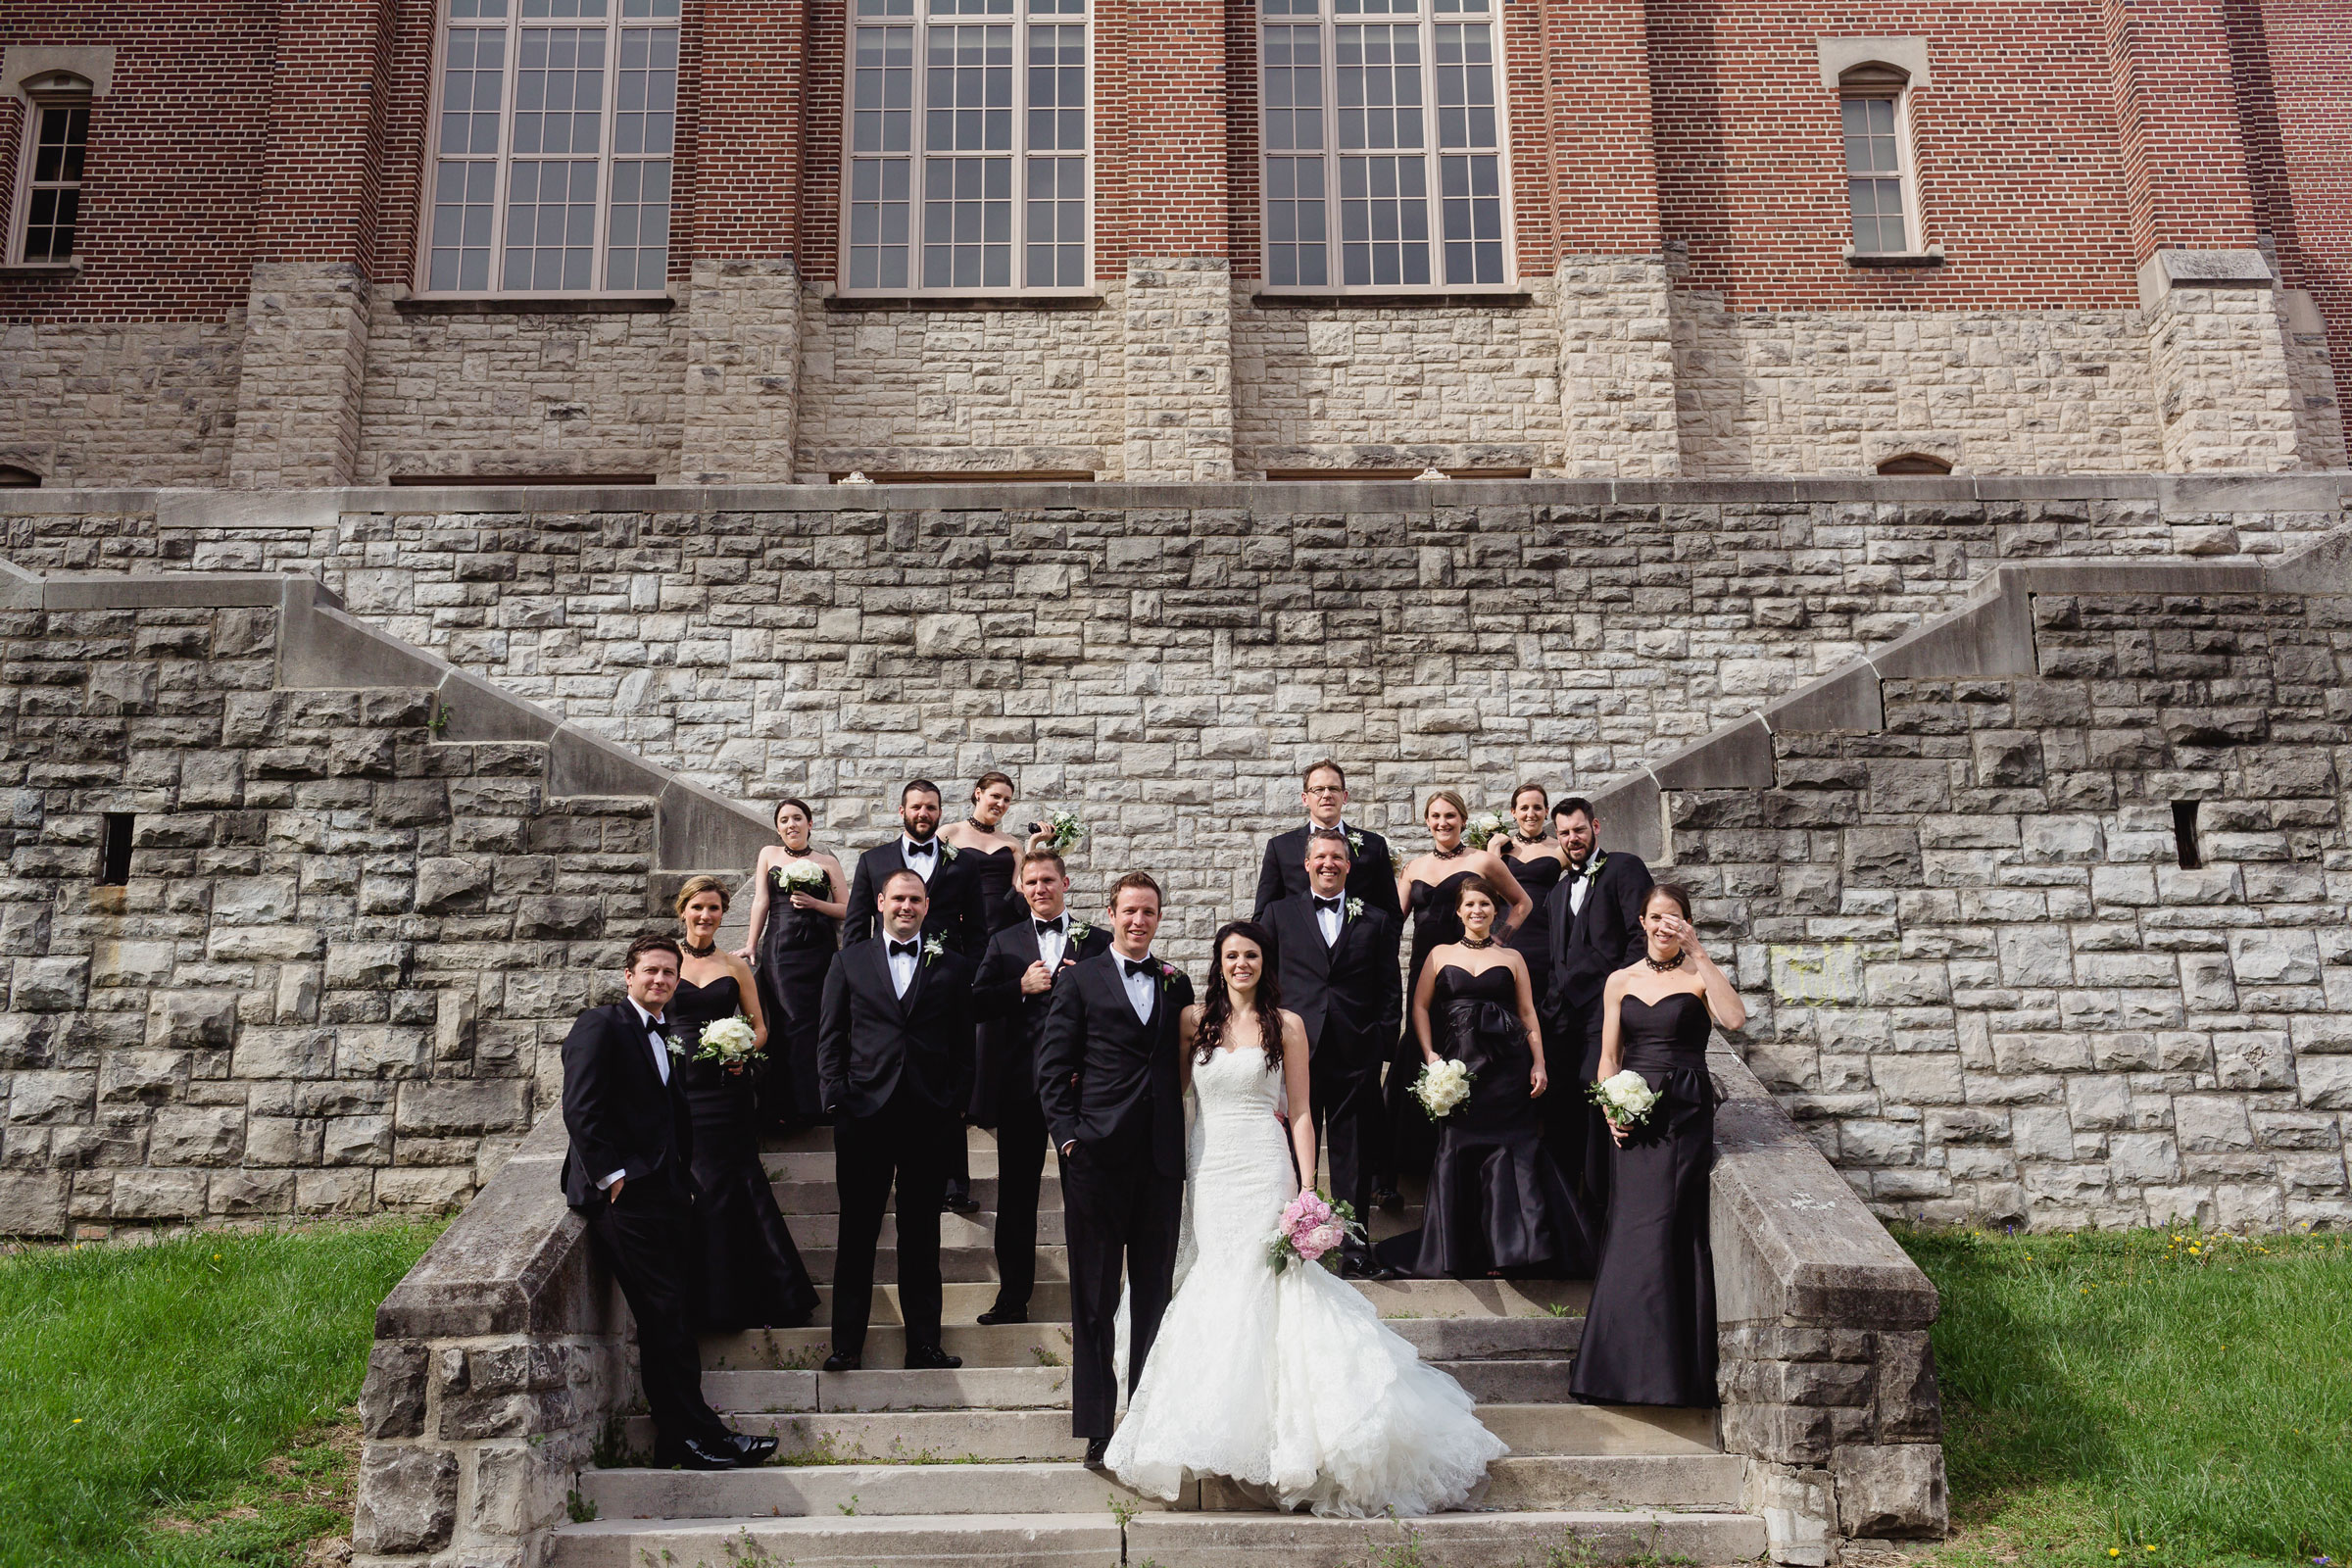 Marissa + Sean - This glamorous black + white celebration at Toledo Country Club was anything less than spectacular.